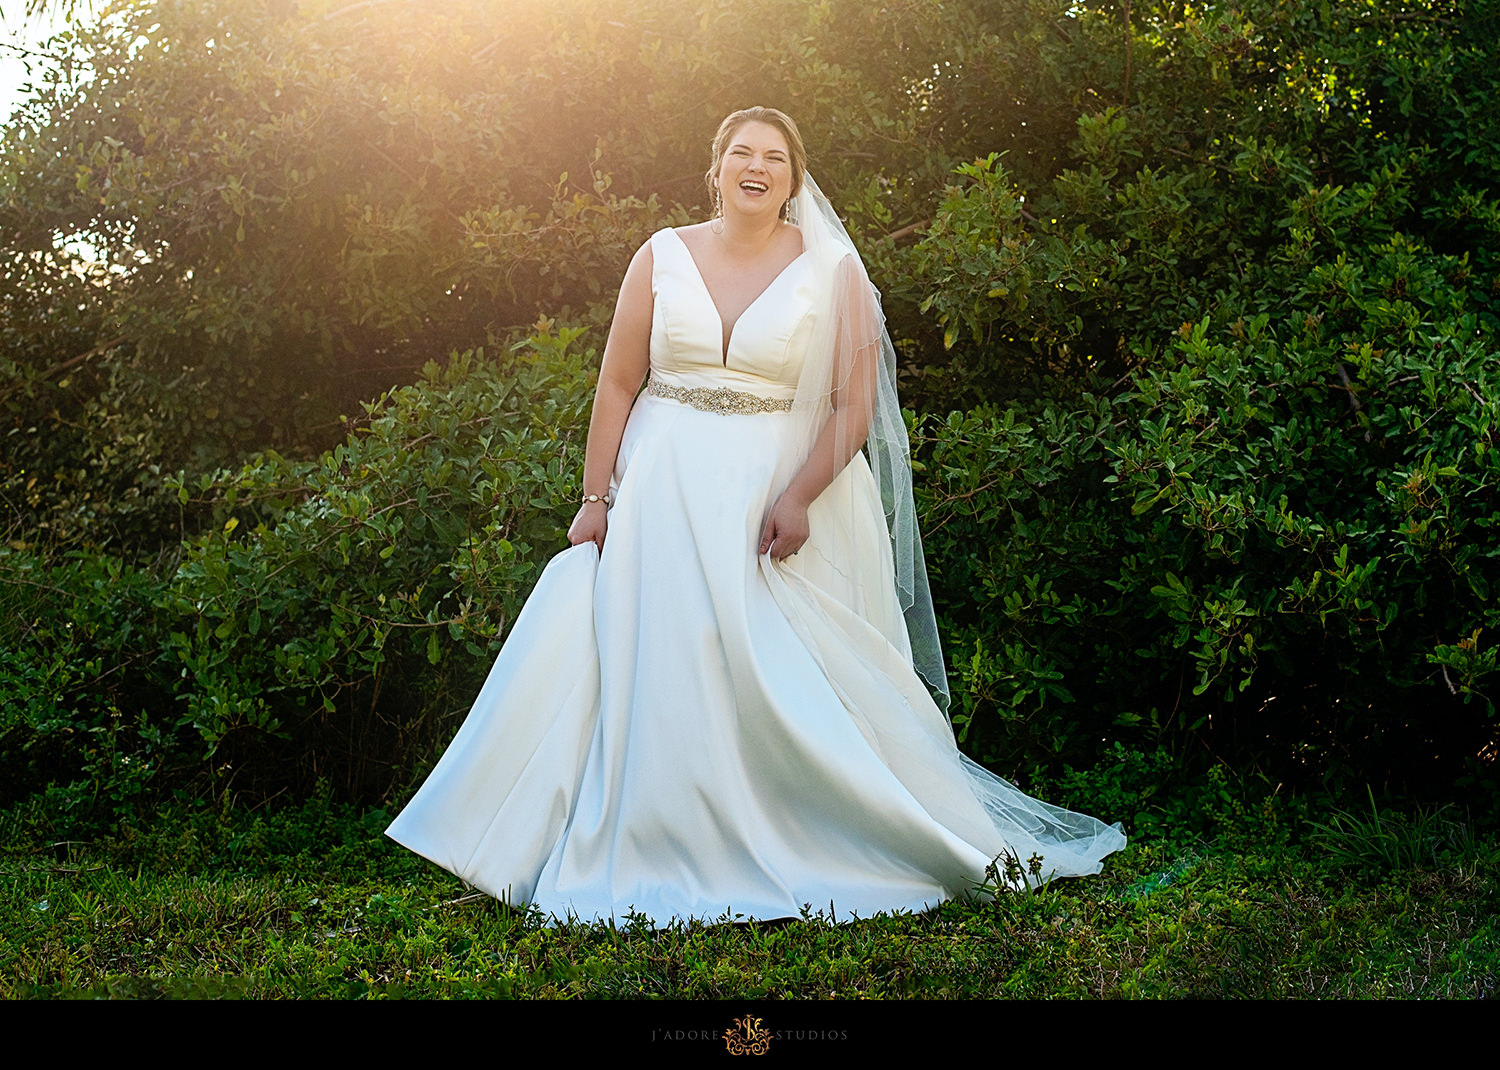 Bride laughing in golden sunlight